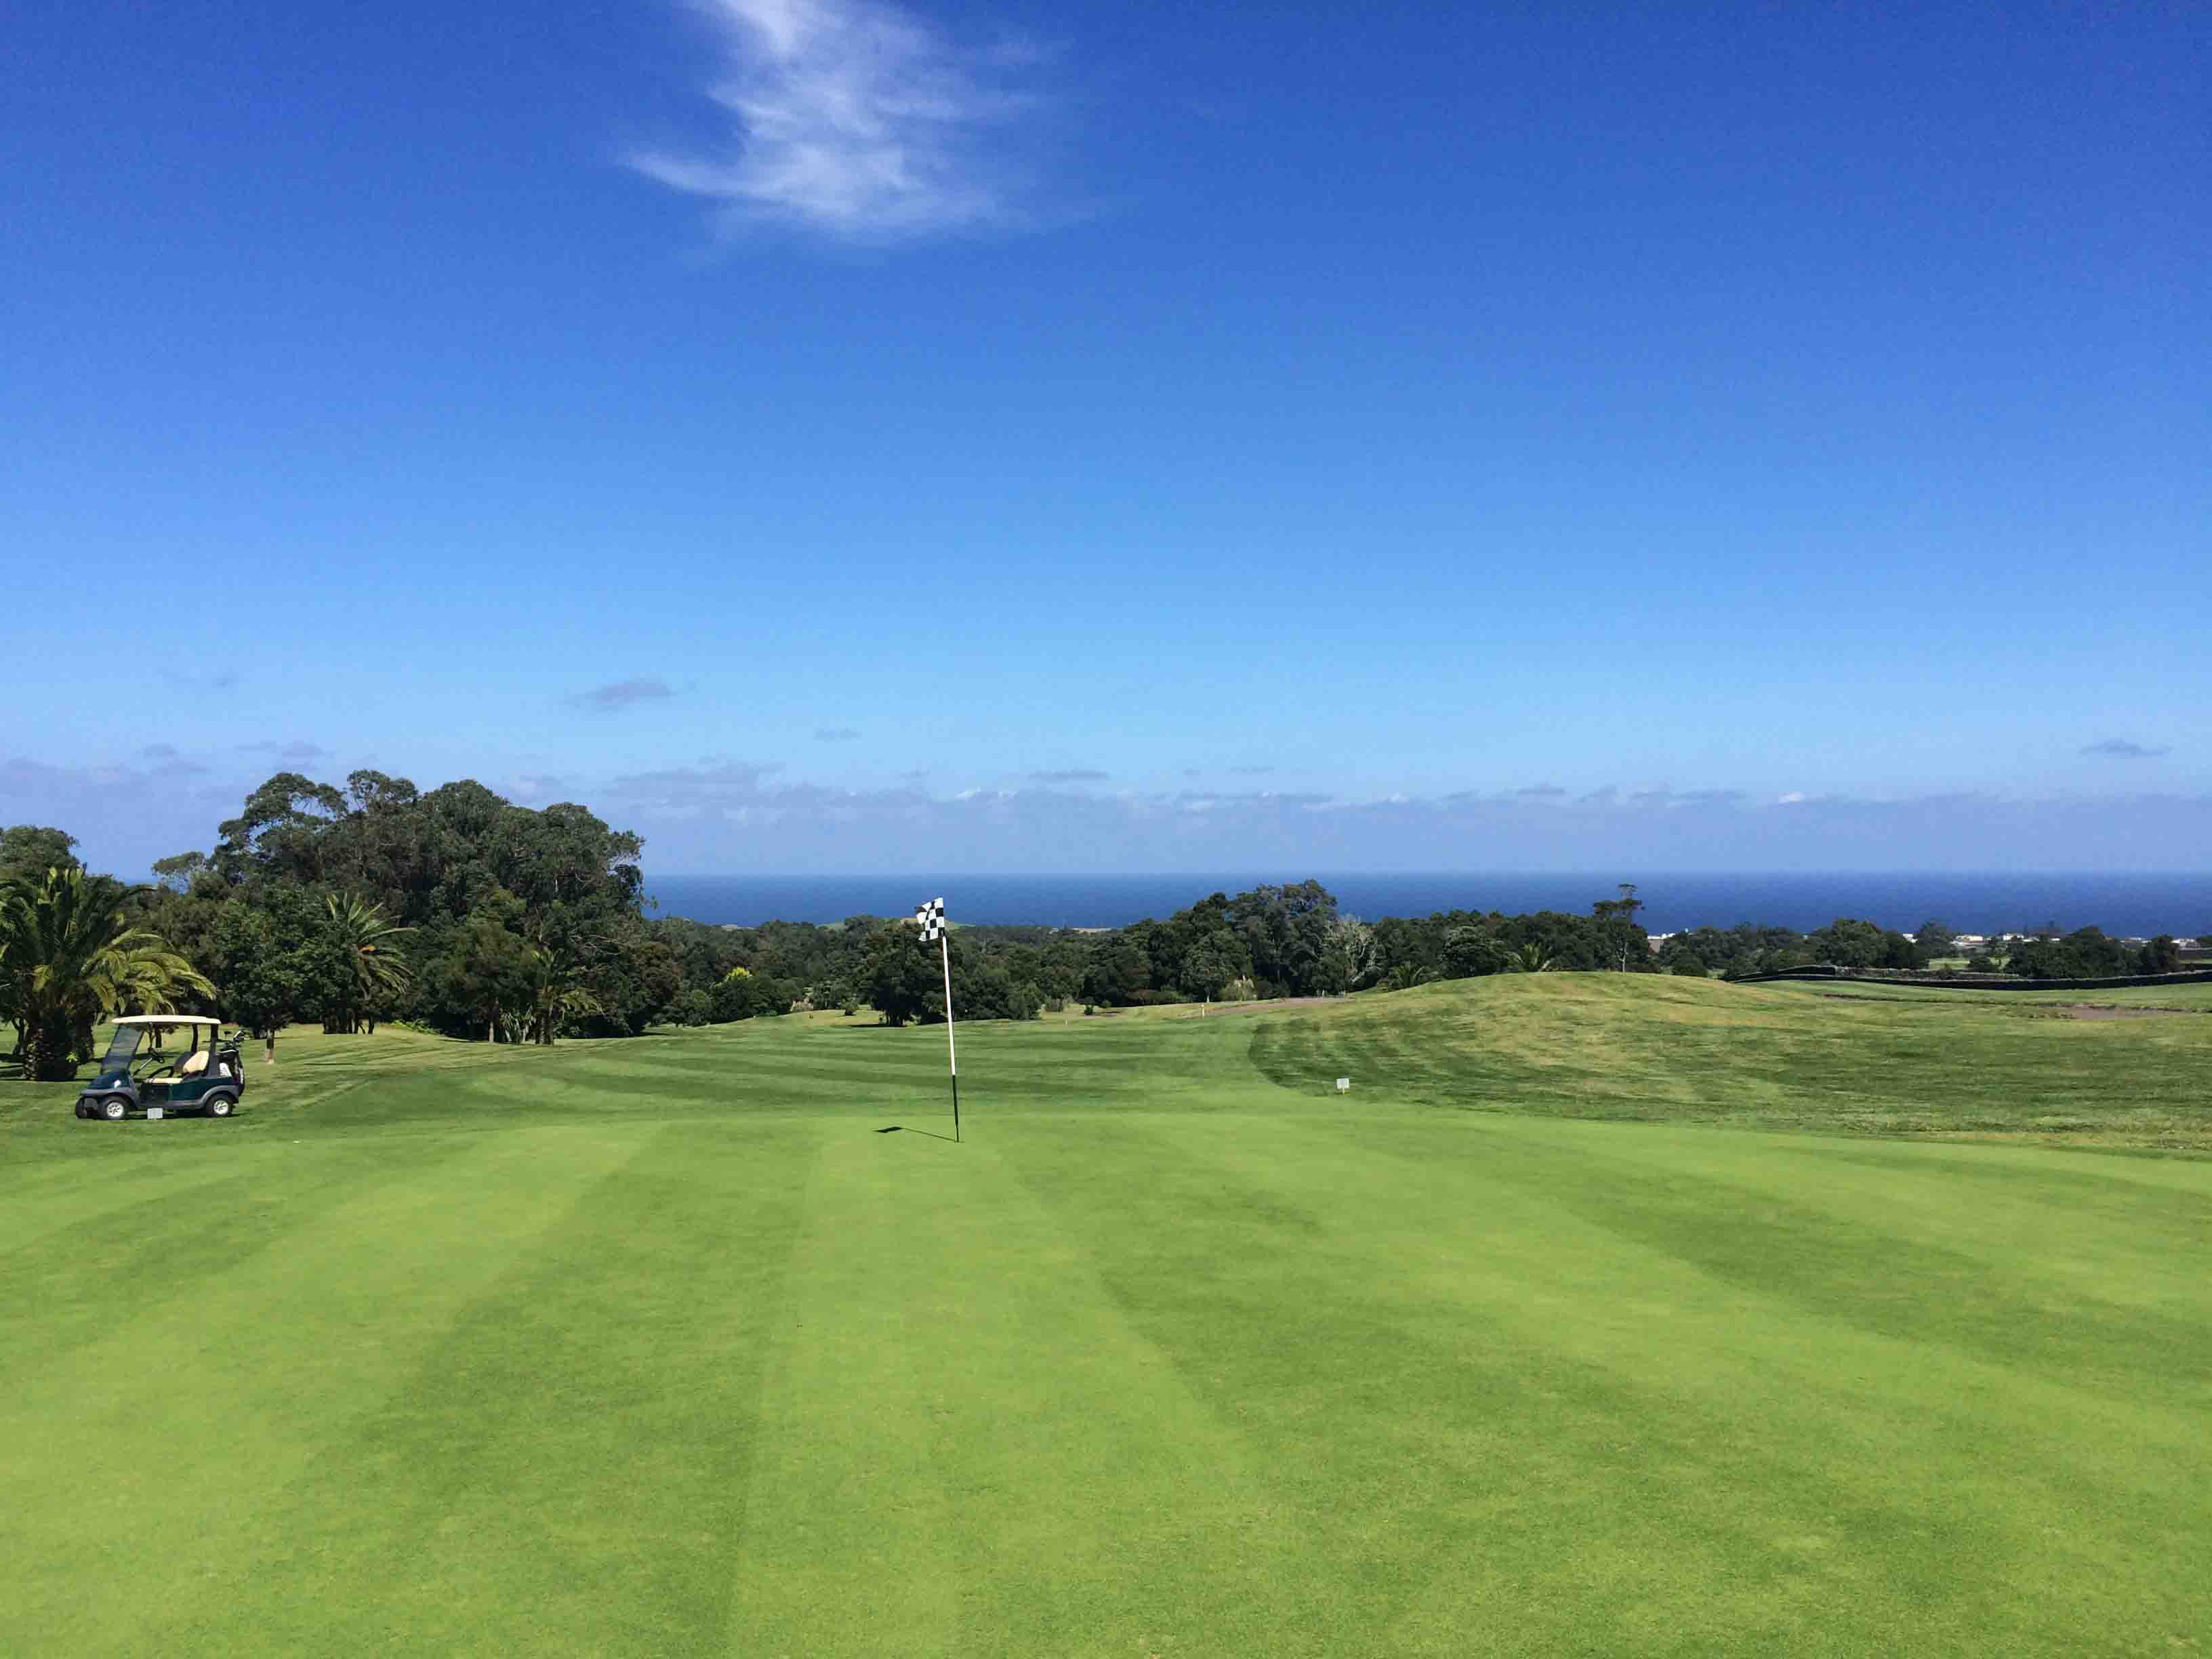 Batalha Golf Course on the Azores Islands